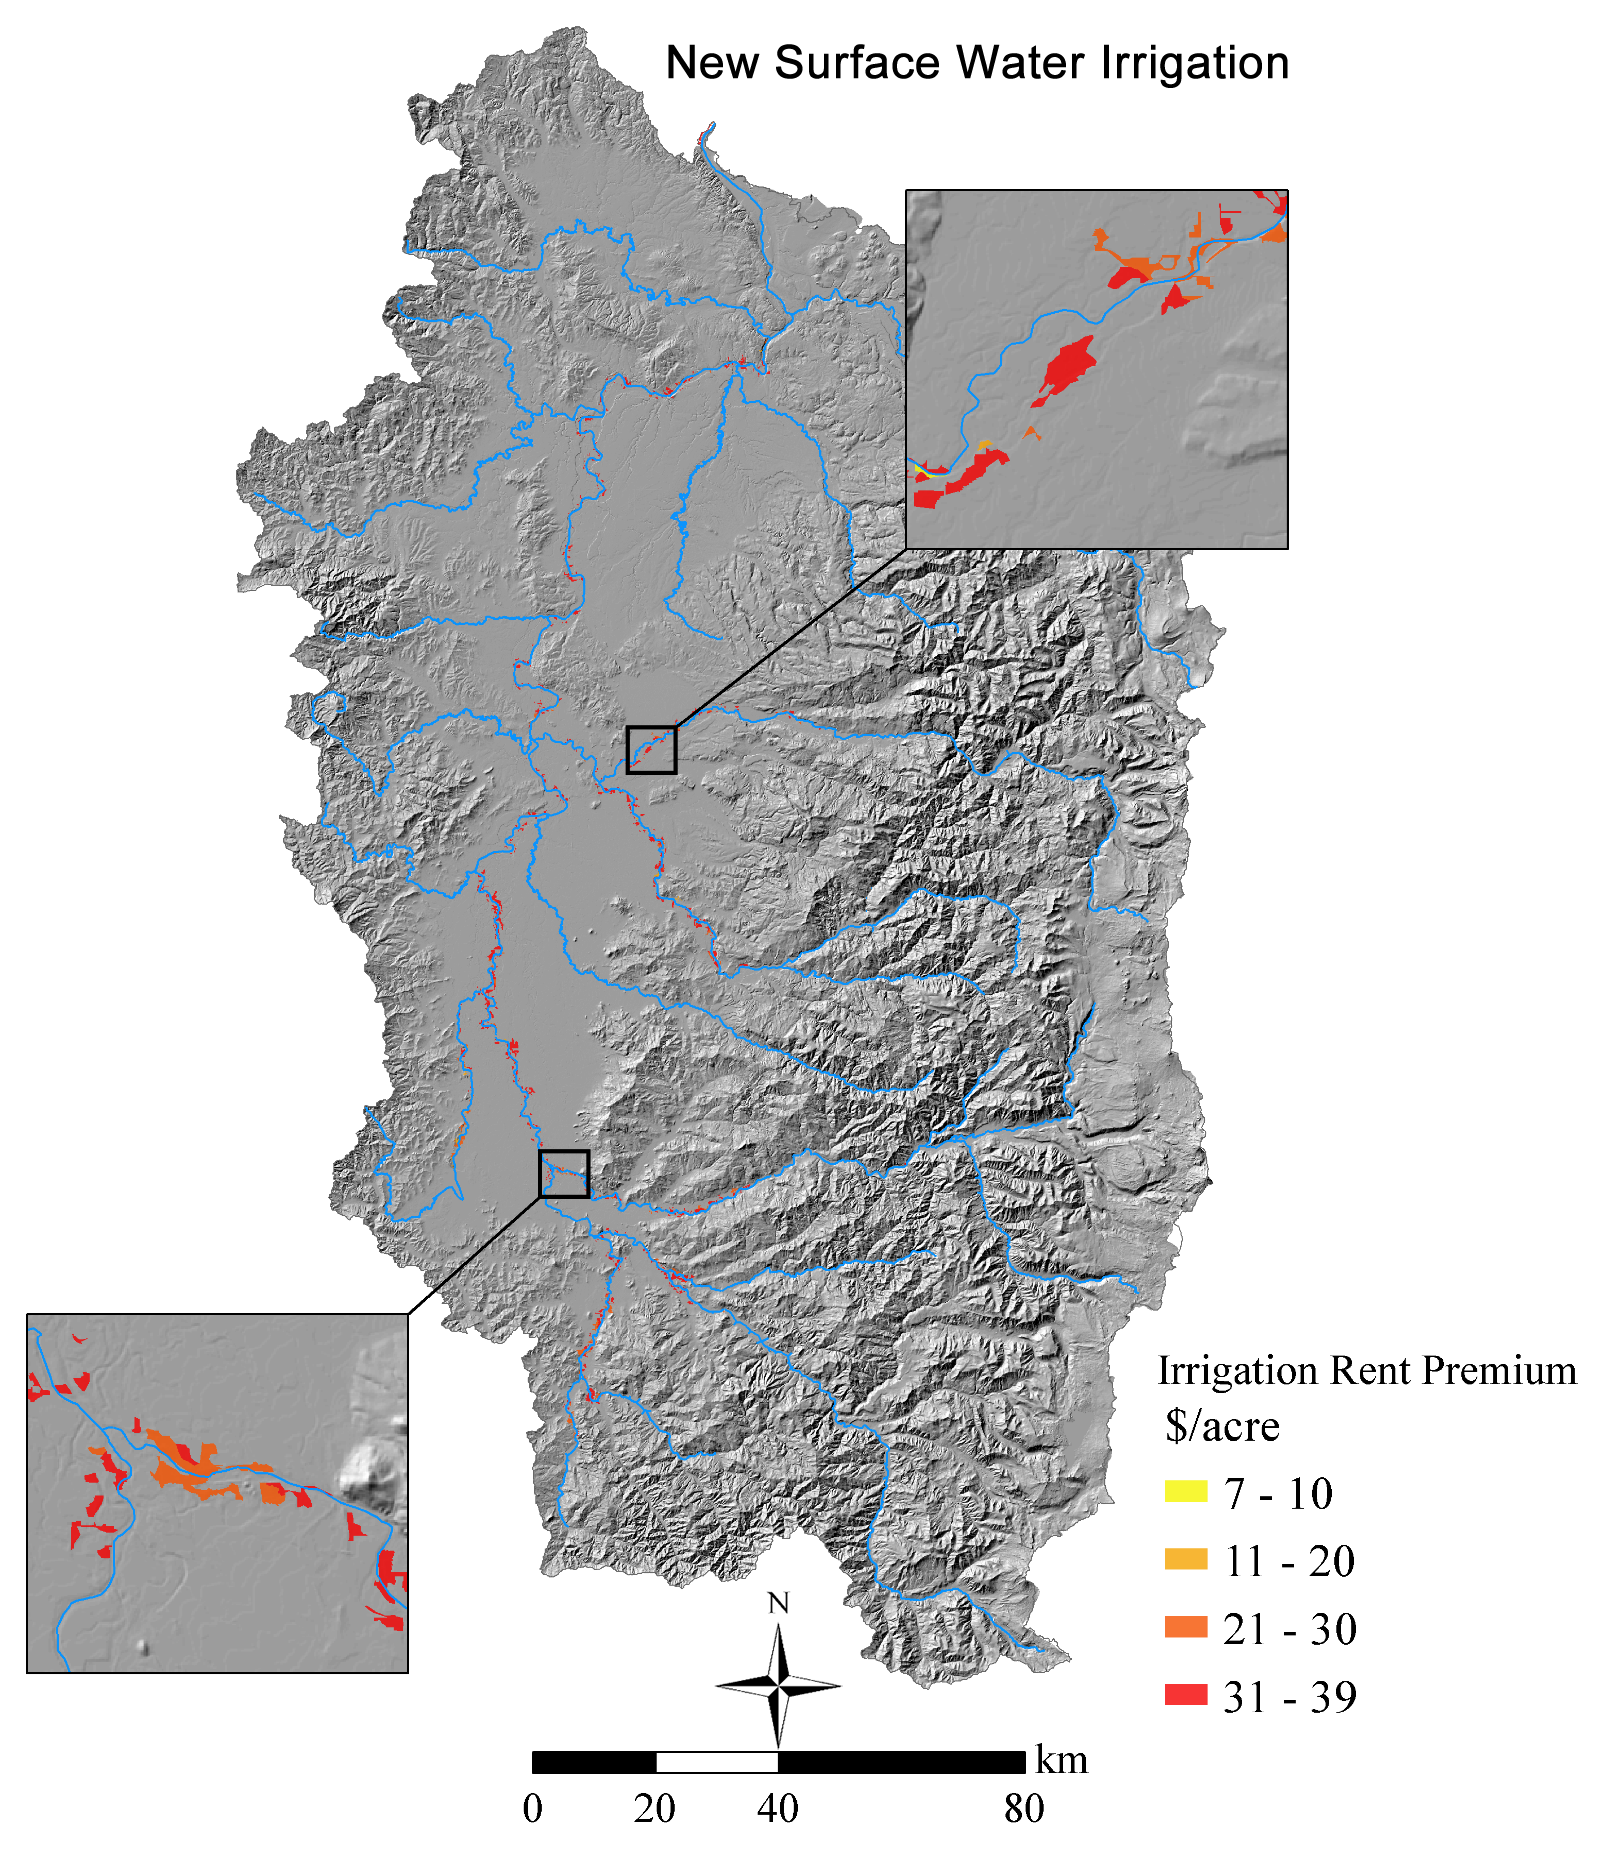 Locations of new irrigation water rights with low conveyance cost assumptions.